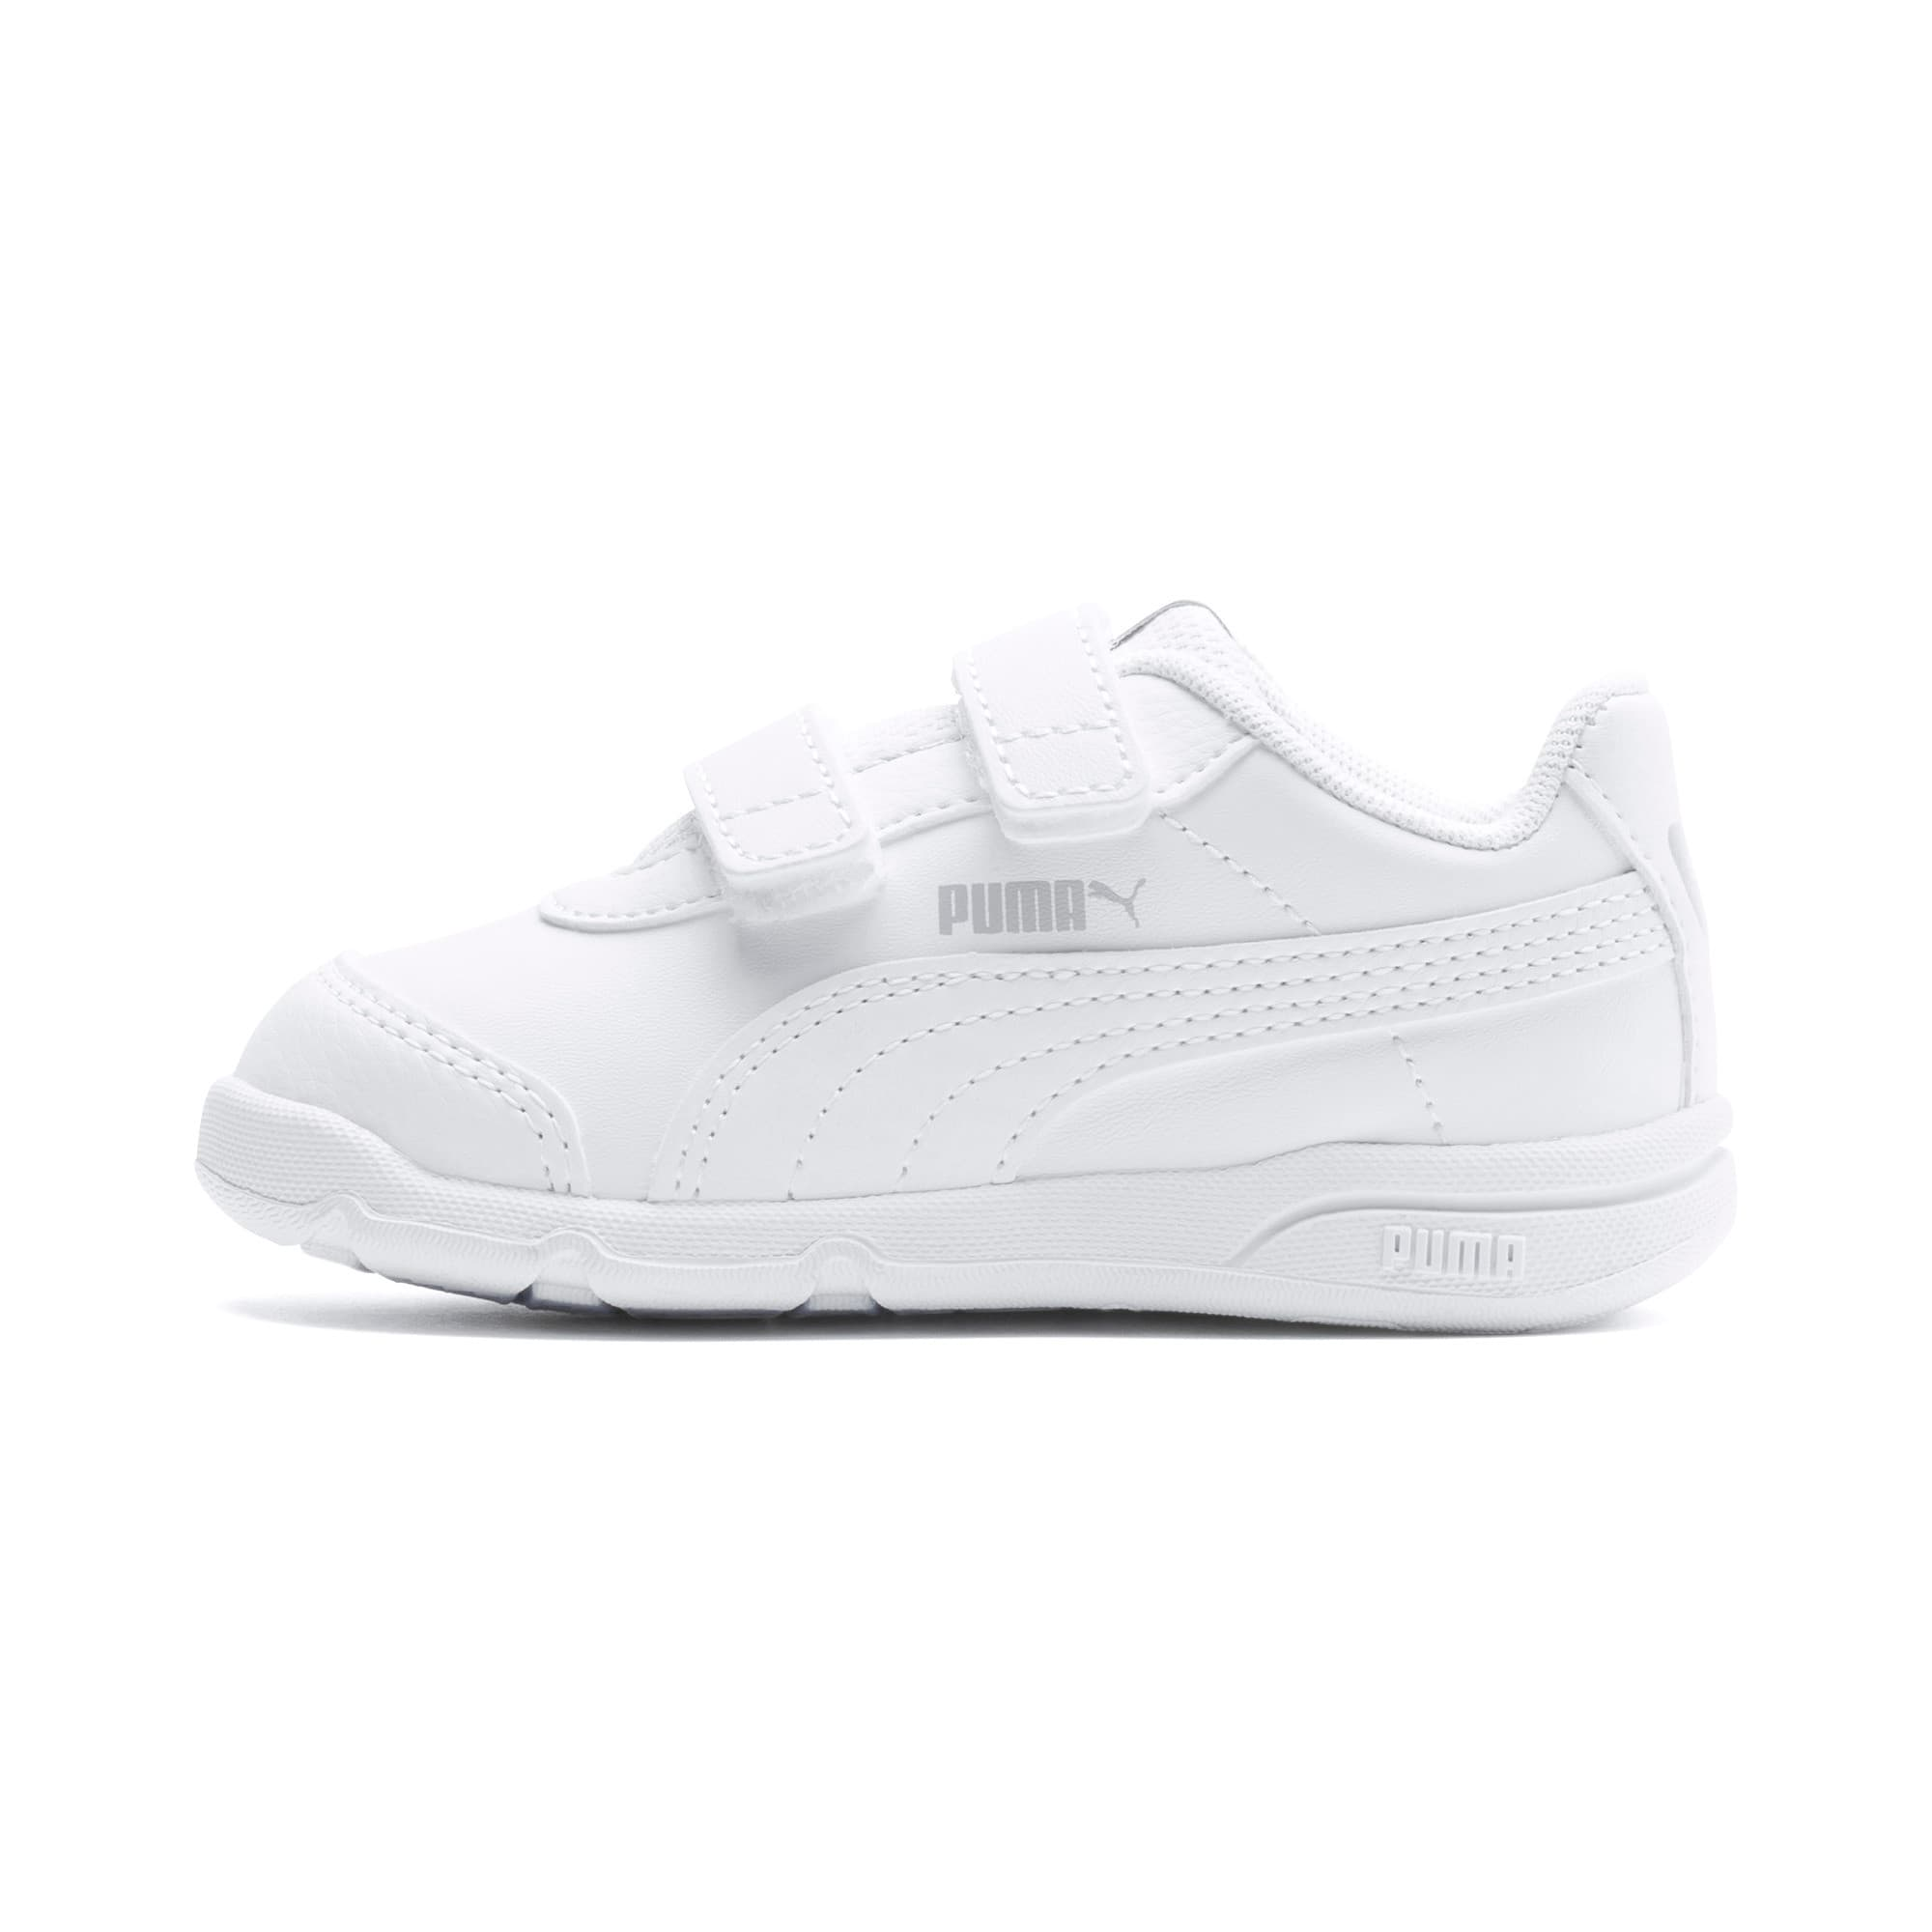 Thumbnail 1 of Stepfleex 2 SL VE V Babies Sneaker, Puma White-Puma White, medium